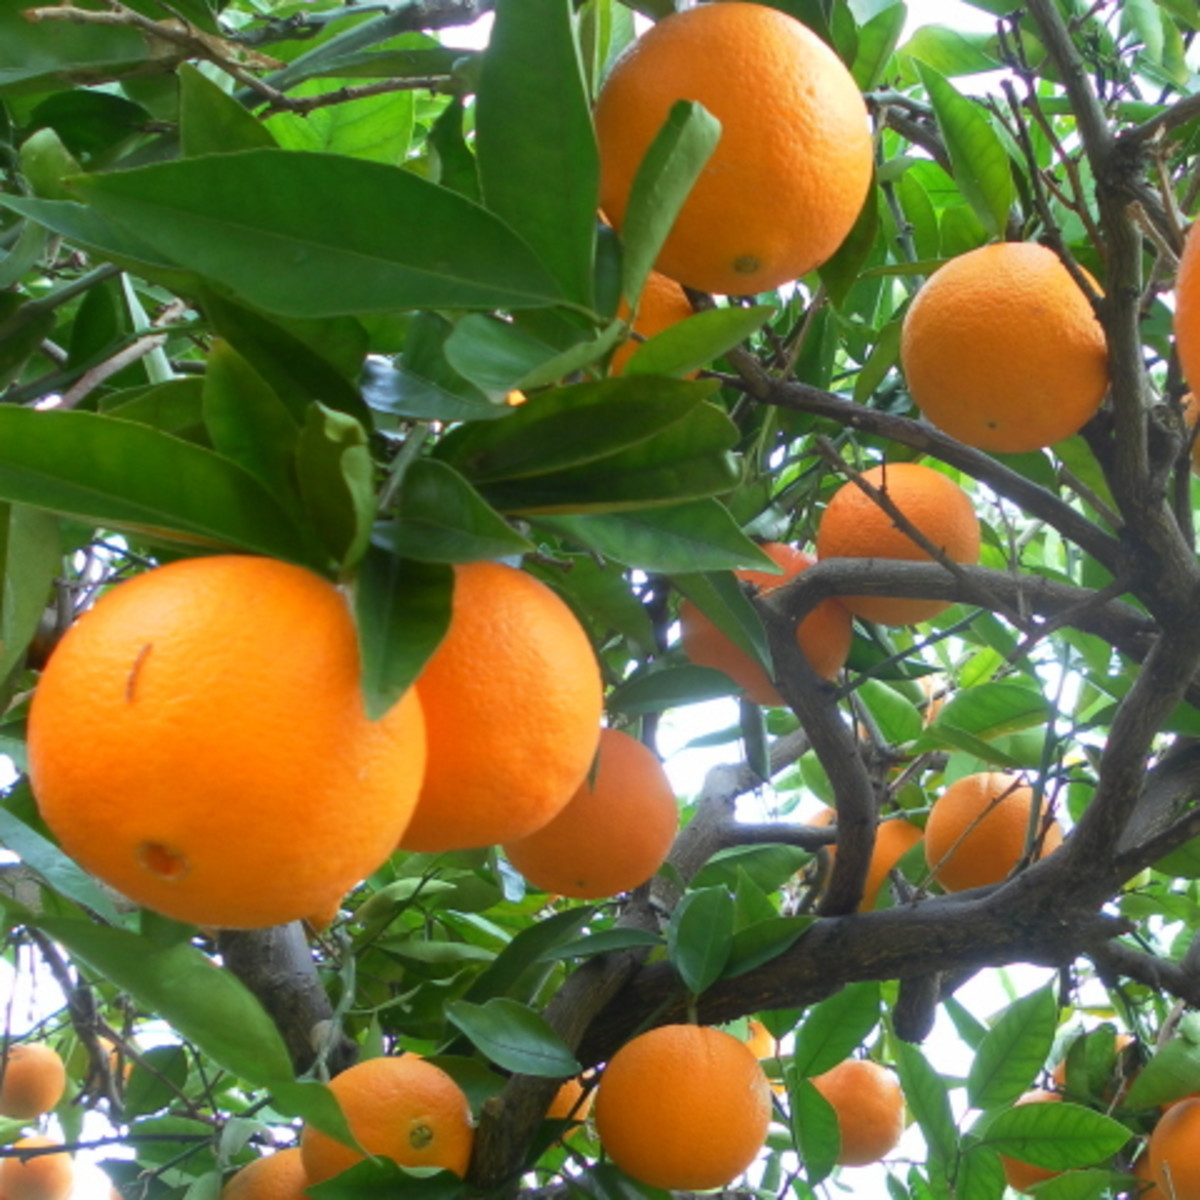 Navel oranges are almost ready for harvesting.